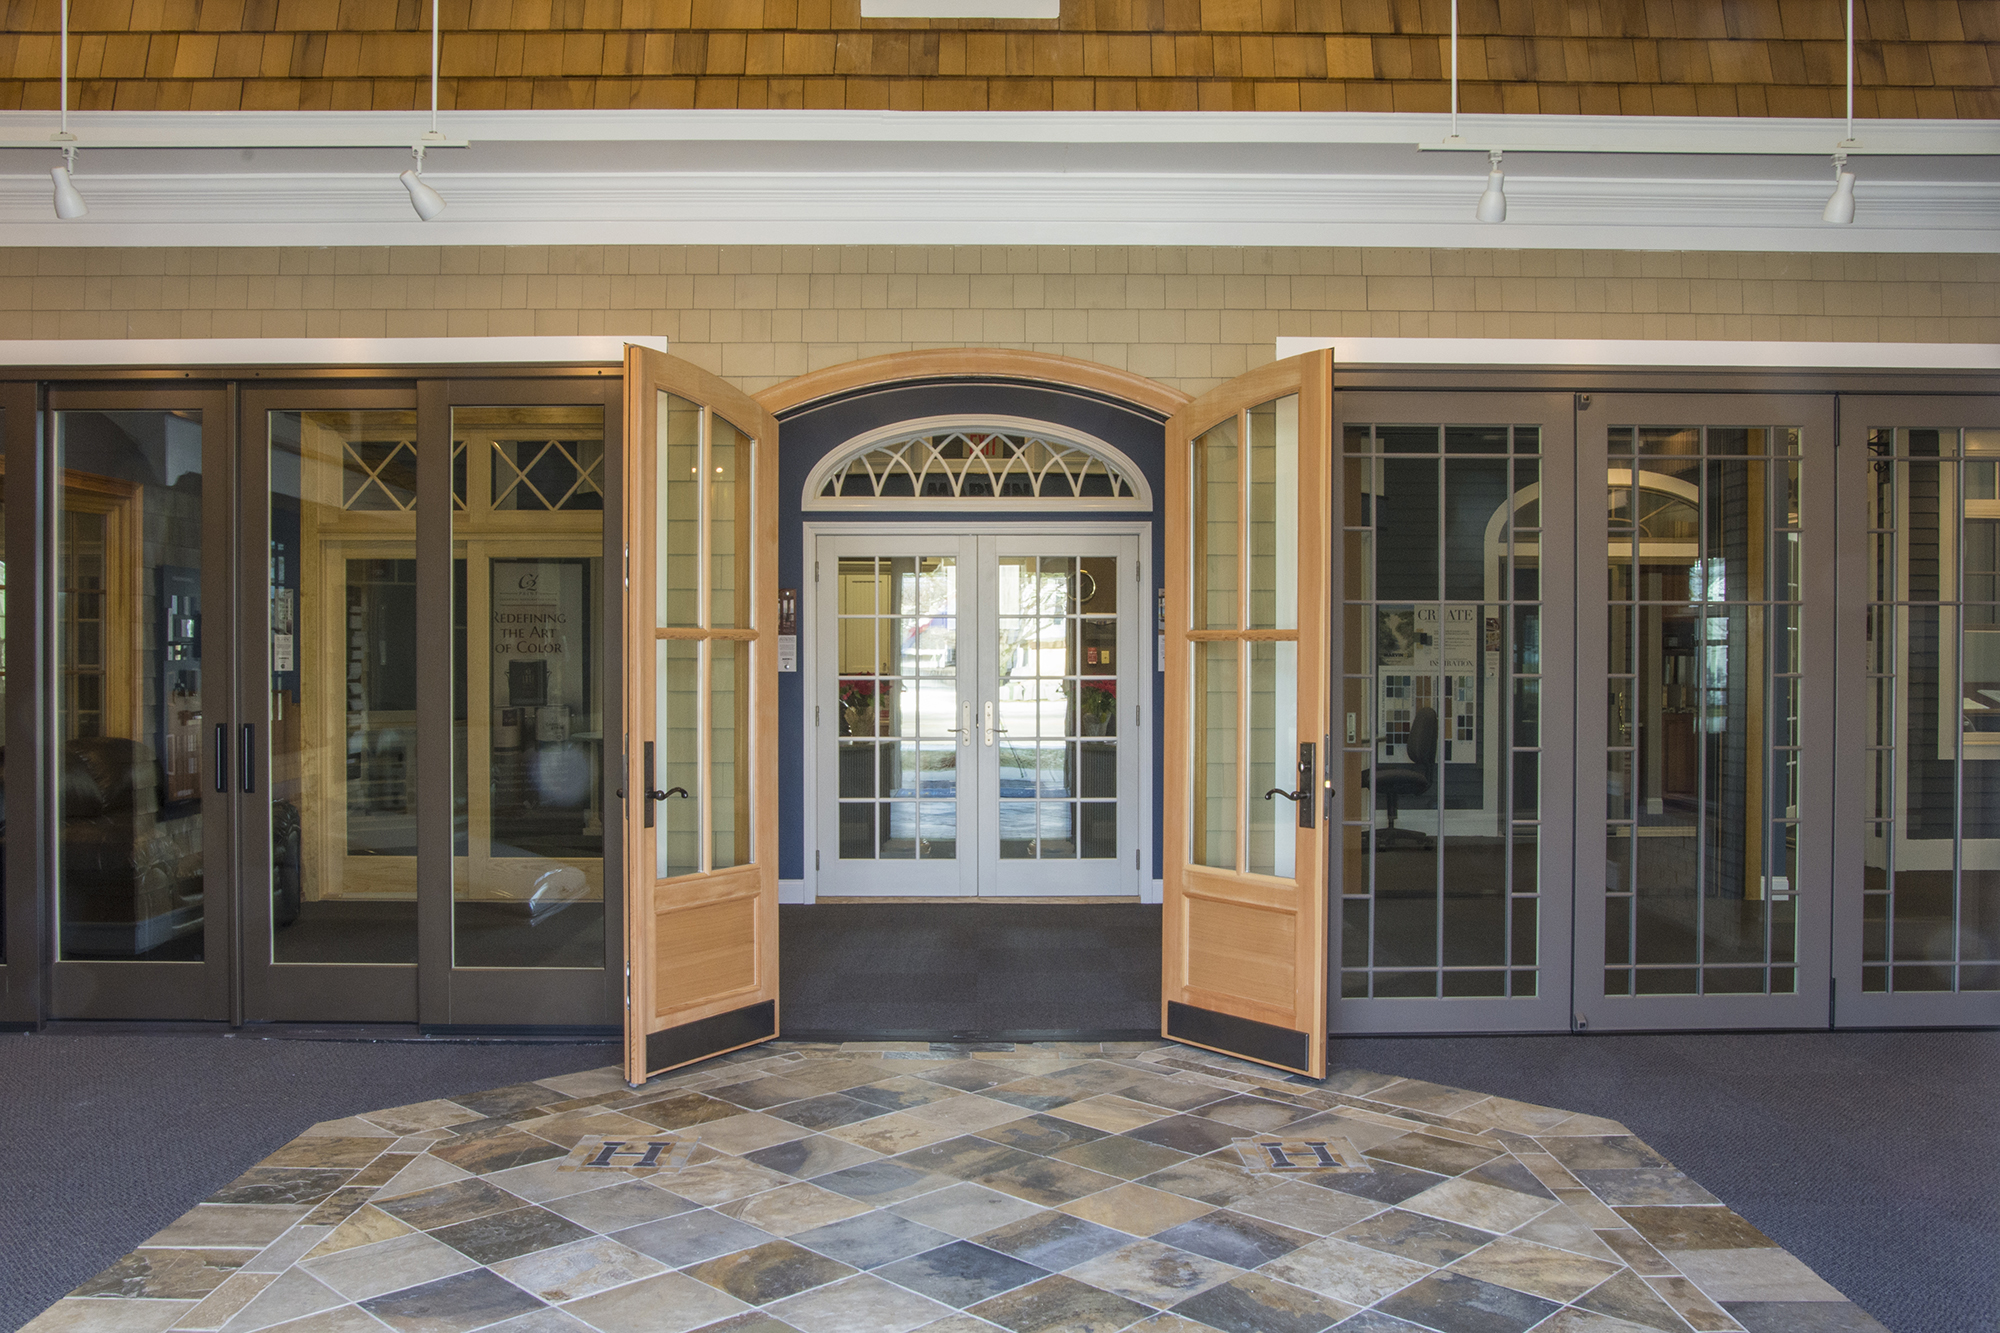 Visit Humphreys Window And Door Gallery For The Best Selection Around